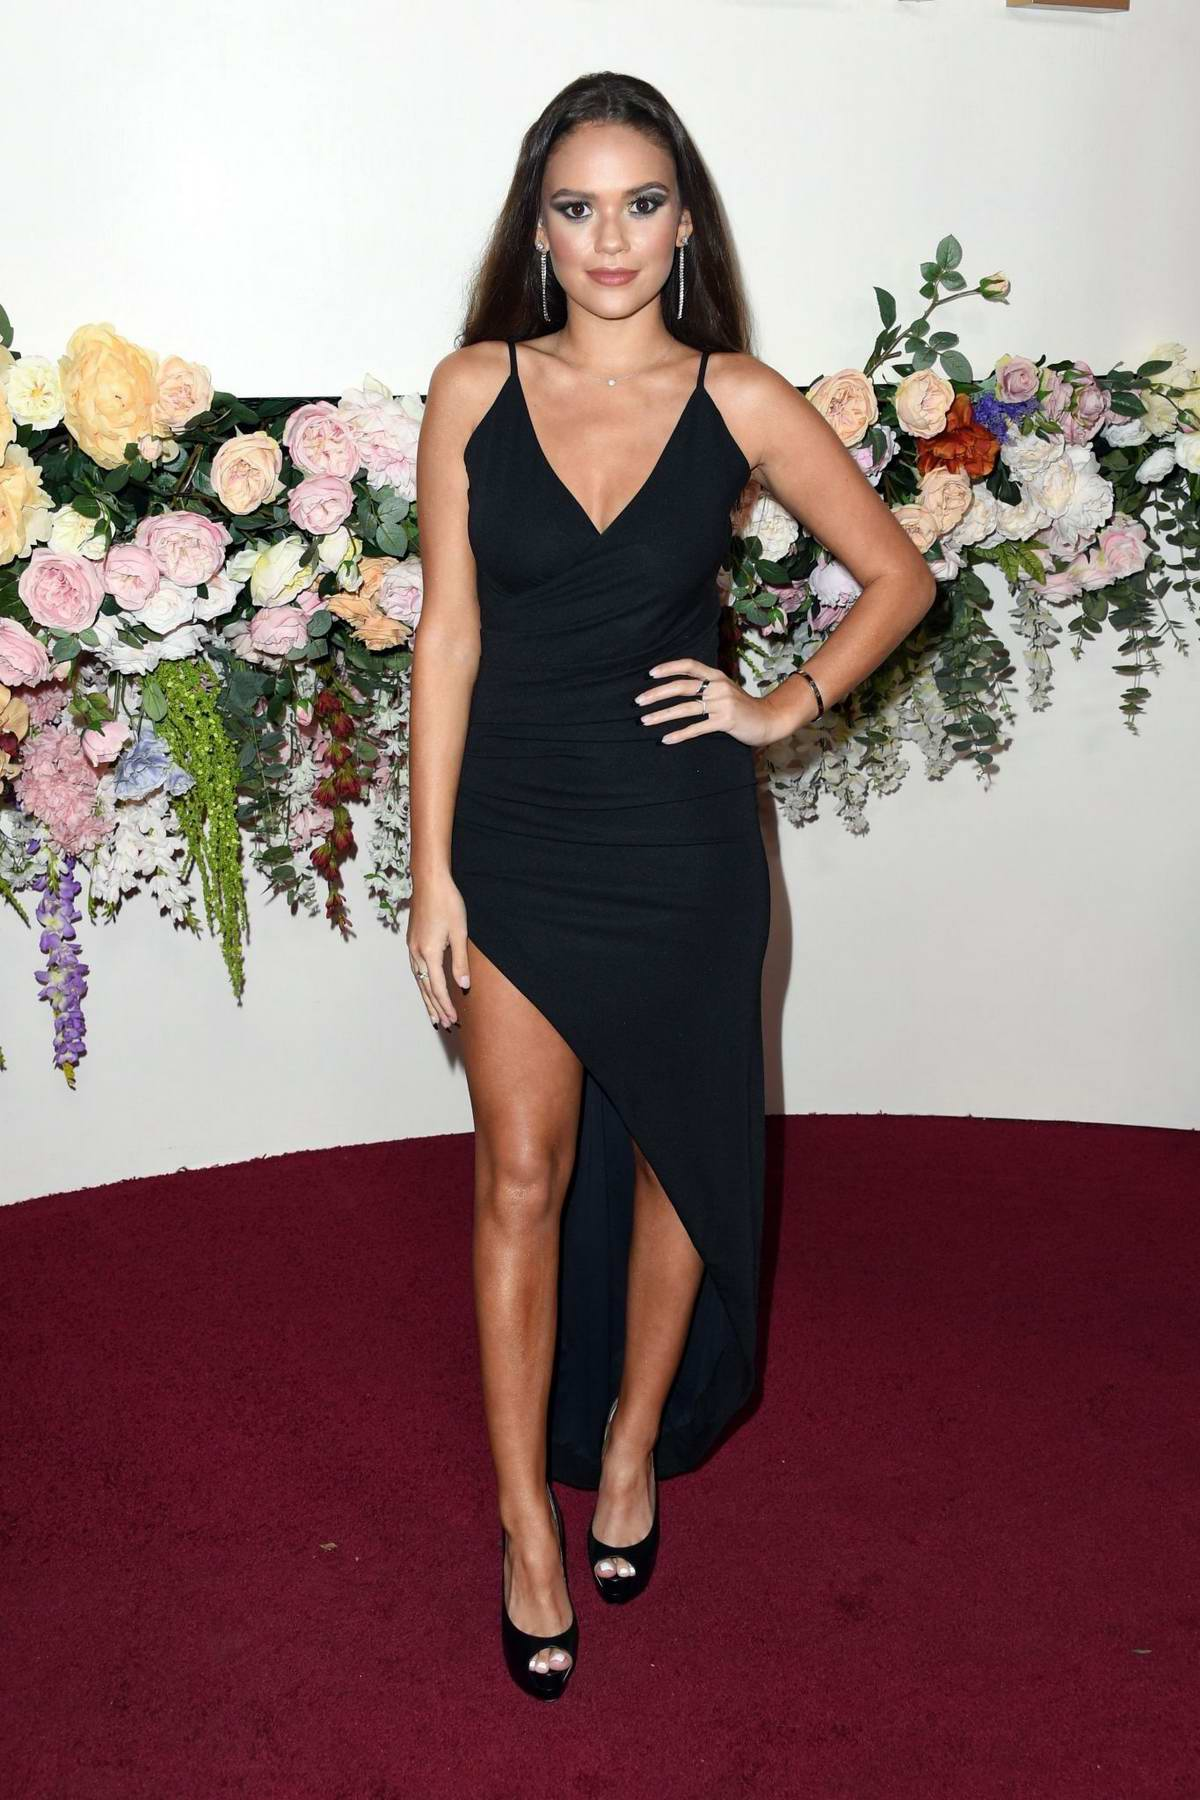 Madison Pettis attends the 3rd Annual REVOLVE Awards at Goya Studios in Hollywood, California